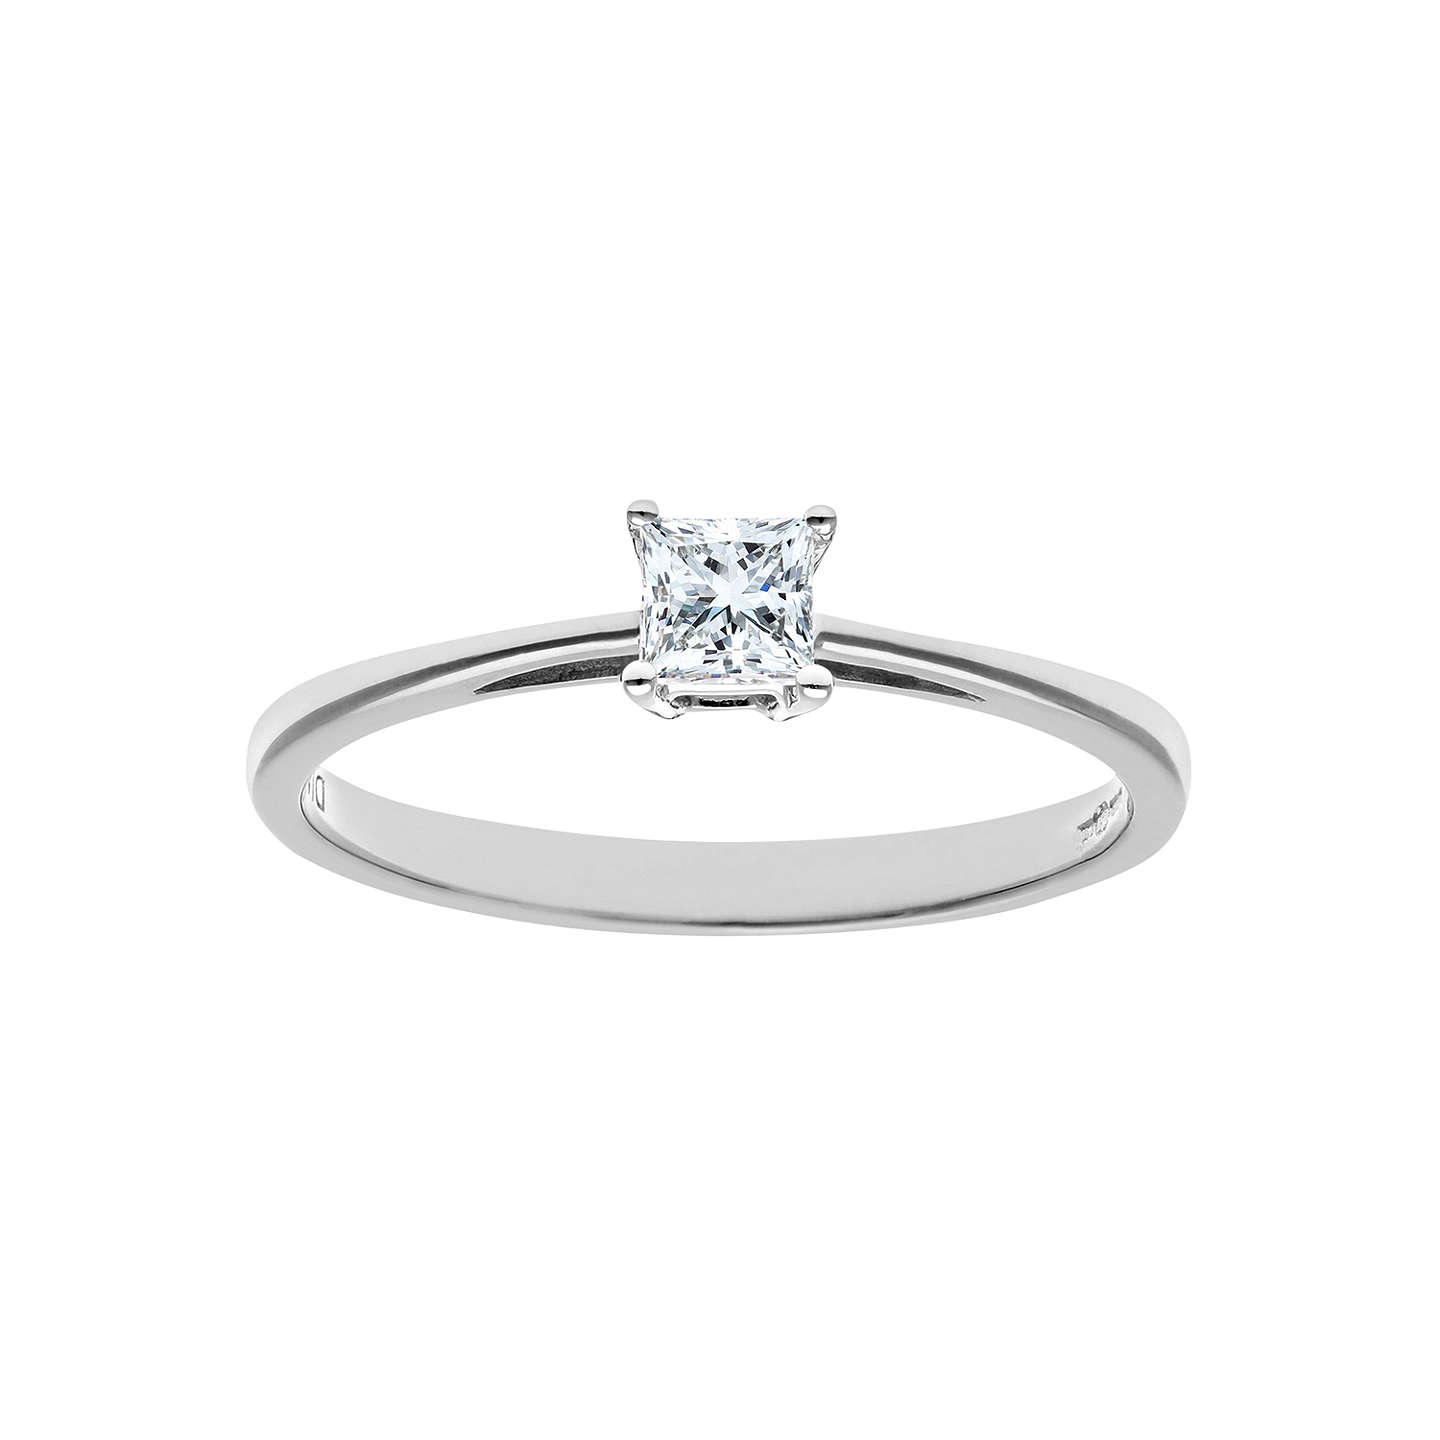 cool princess cathedral engagement rings settings cut jewellery vfsnxxz ring platinum diamond